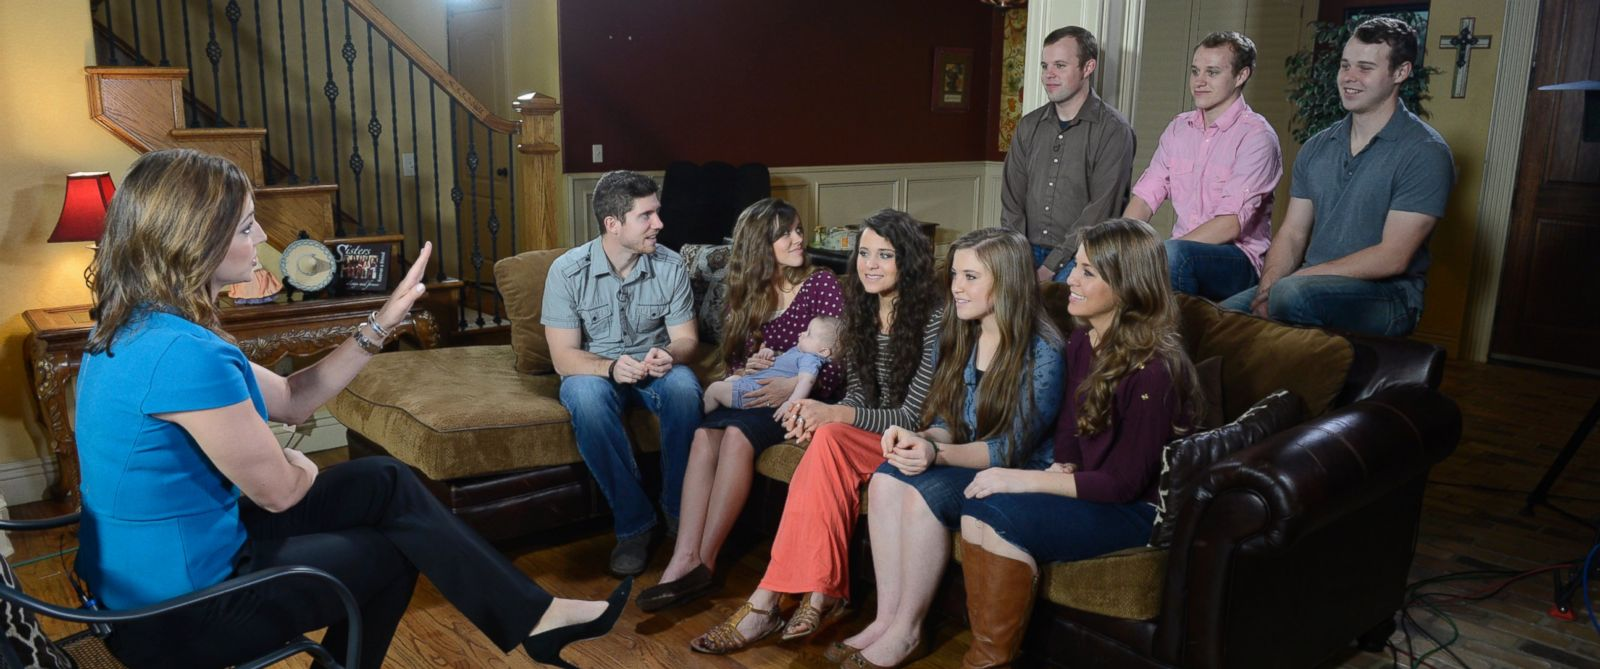 """PHOTO: Paula Faris from """"Good Morning America"""" talks to members of the controversial Duggar family of """"19 Kids and Counting"""" from their Arkansas home, who will be returning to television with a new reality show on TLC."""